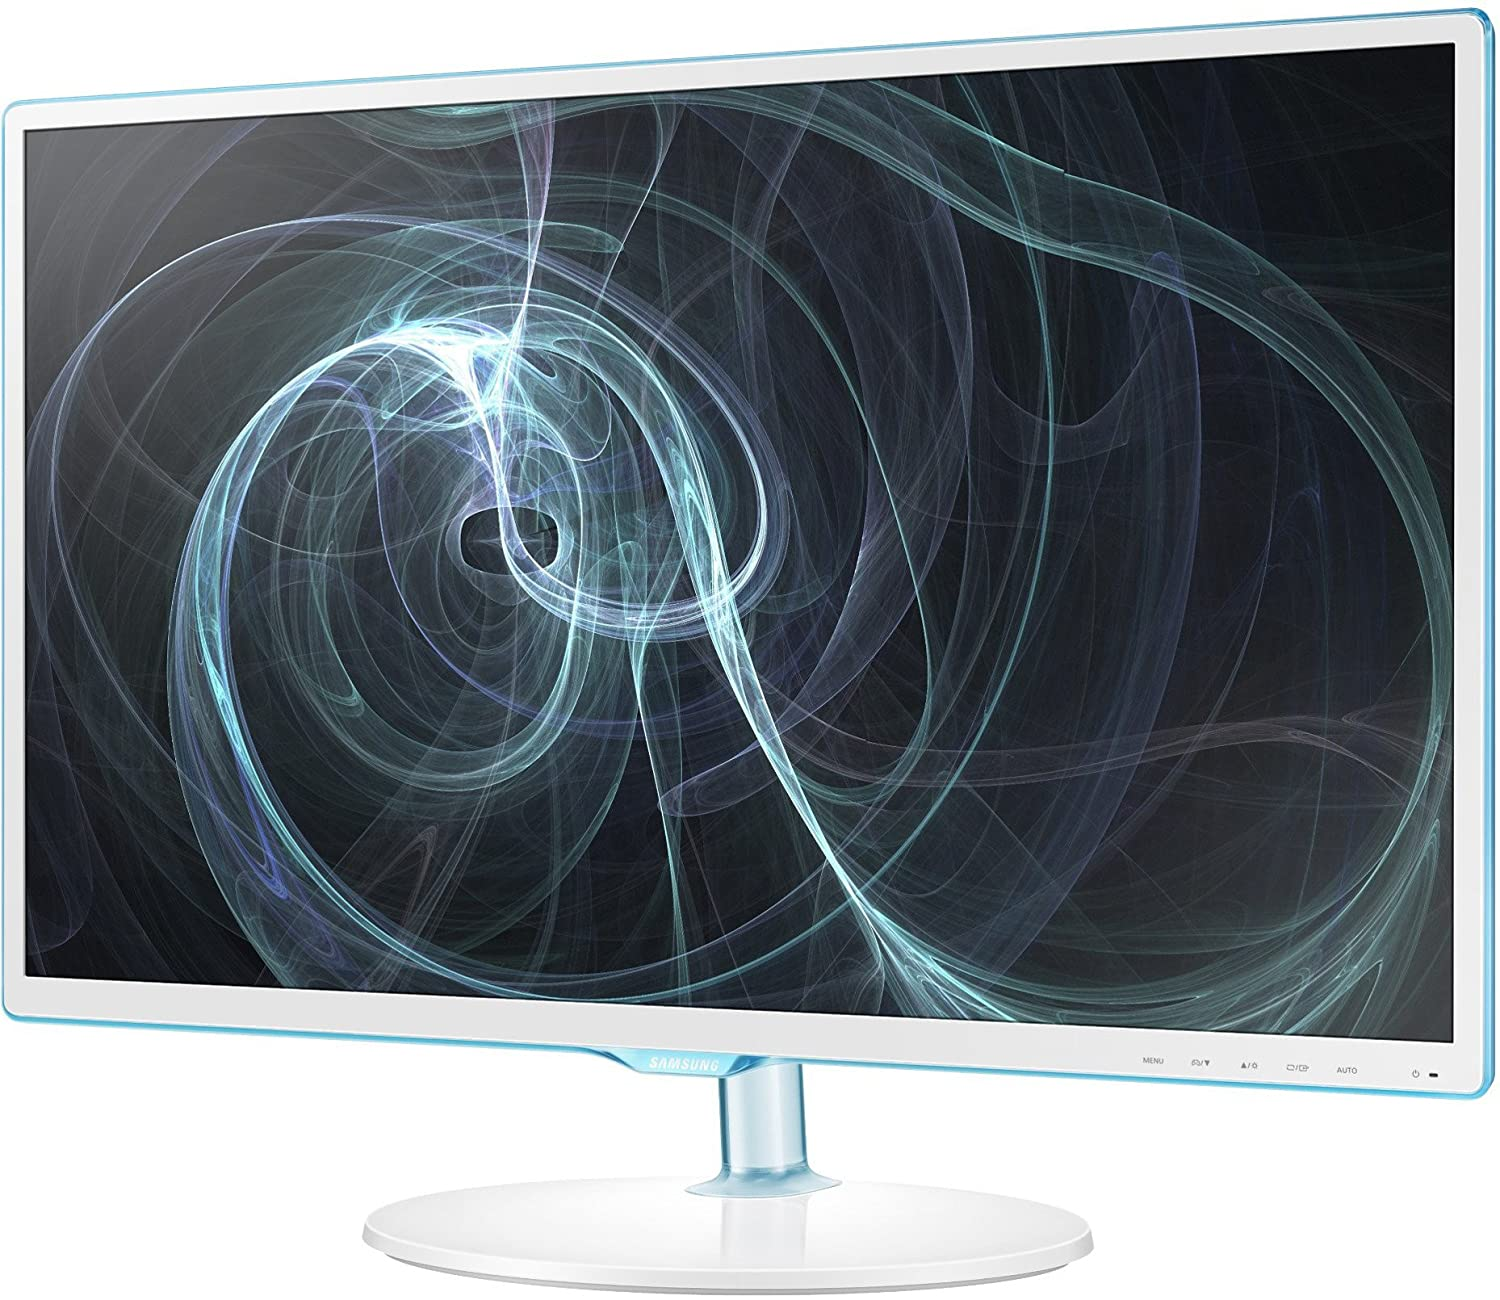 fb199f38d Samsung S24D391HL PLS 23.6 inch LED HDMI Monitor - White: Amazon.co.uk:  Computers & Accessories